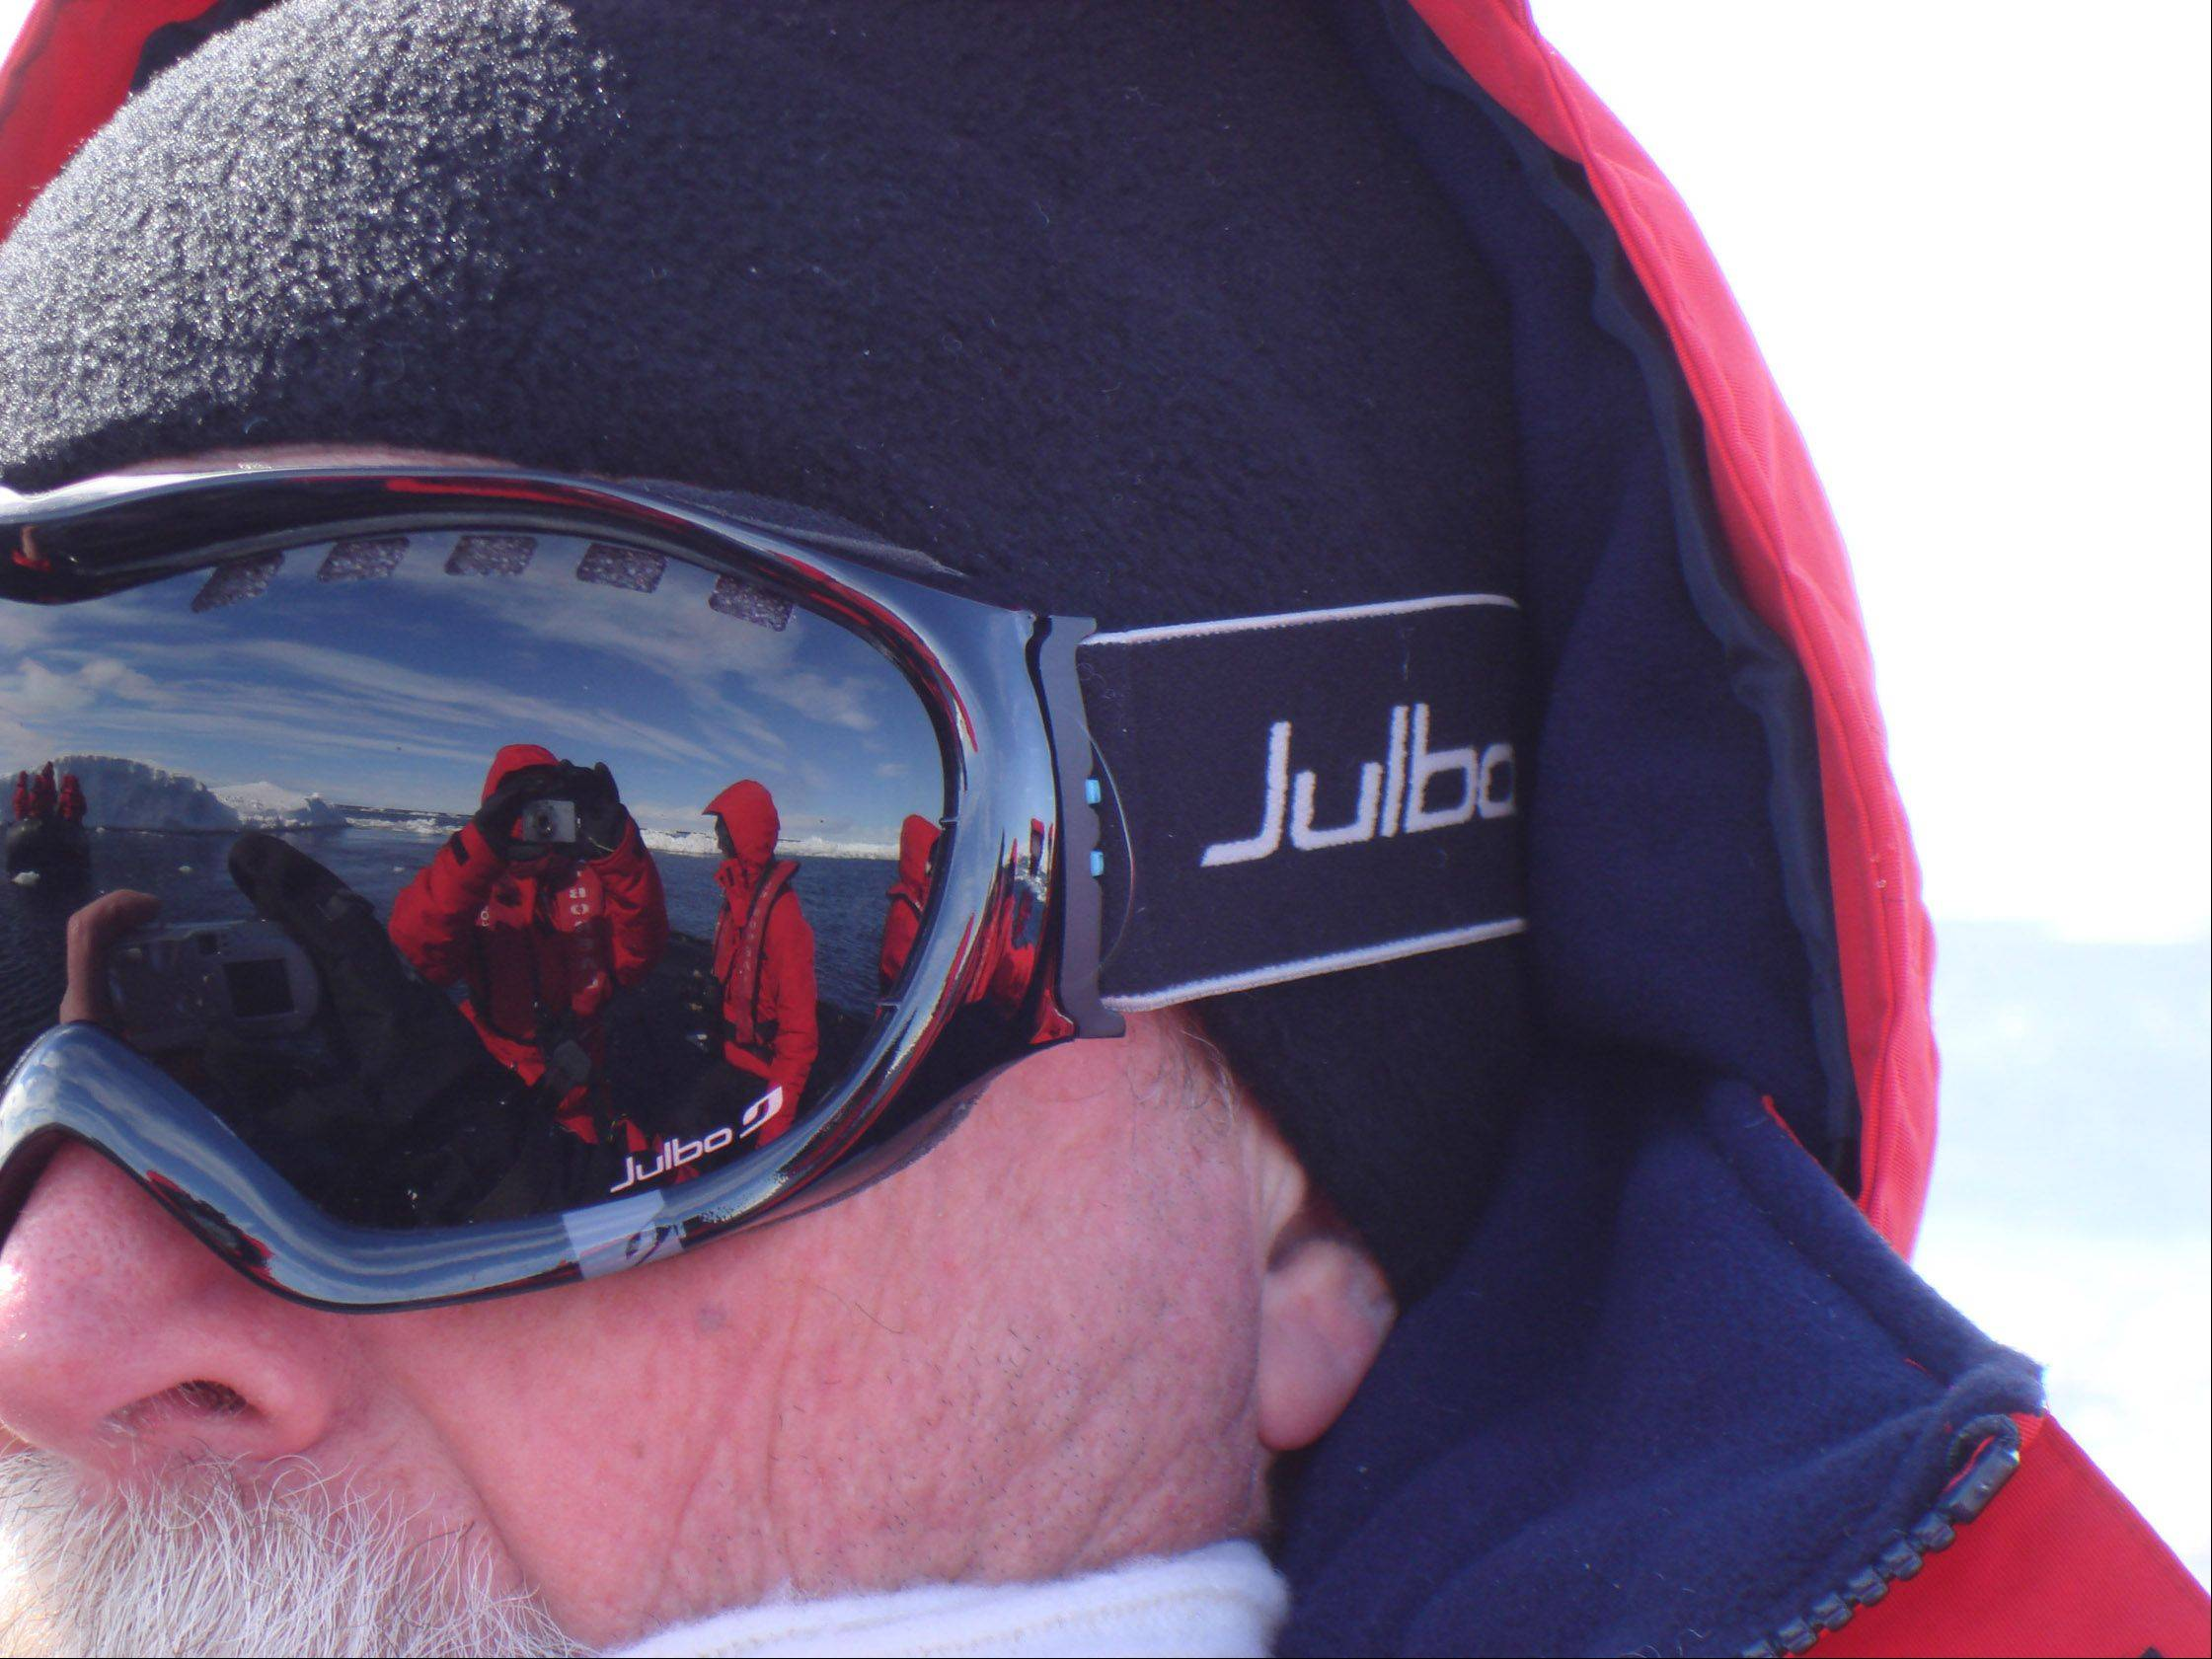 David Robison, of Buffalo Grove, gazes out over the Antarctic Sound, reflected in his protective goggles is a vision of clear skies, pack ice and his wife Judie, the photographer, on the Antarctic Peninsula last month.